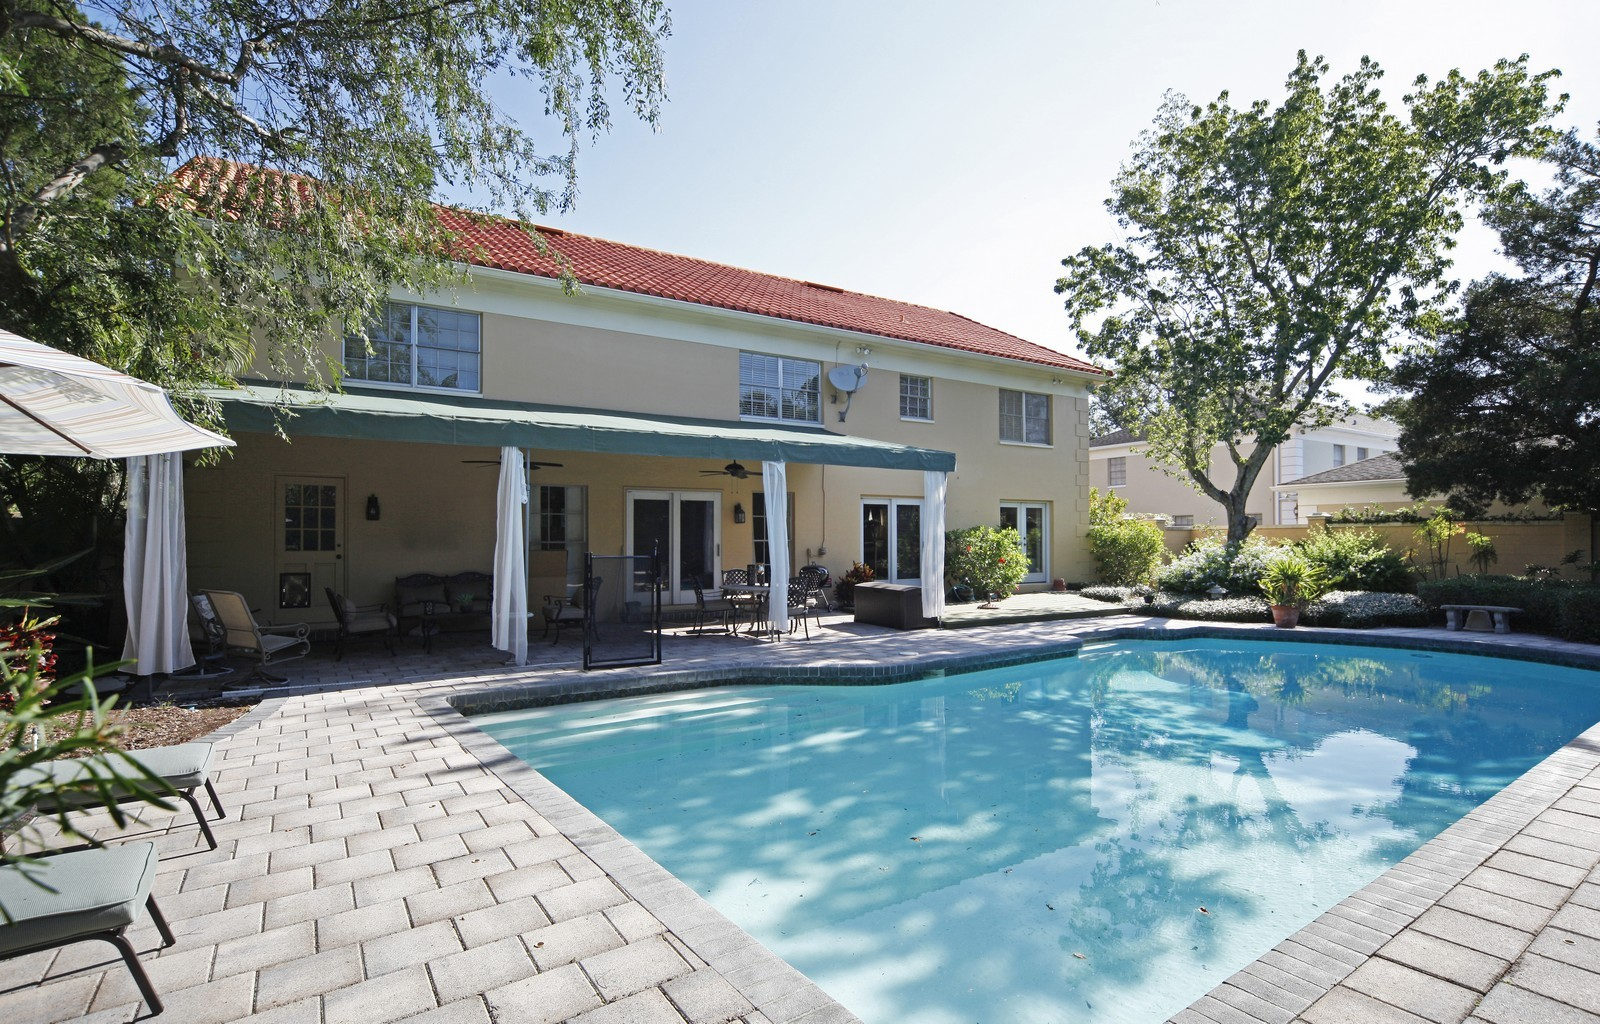 Real Estate Photography - 4920 Lyford Cay Road, Tampa, FL, 33629 - Pool